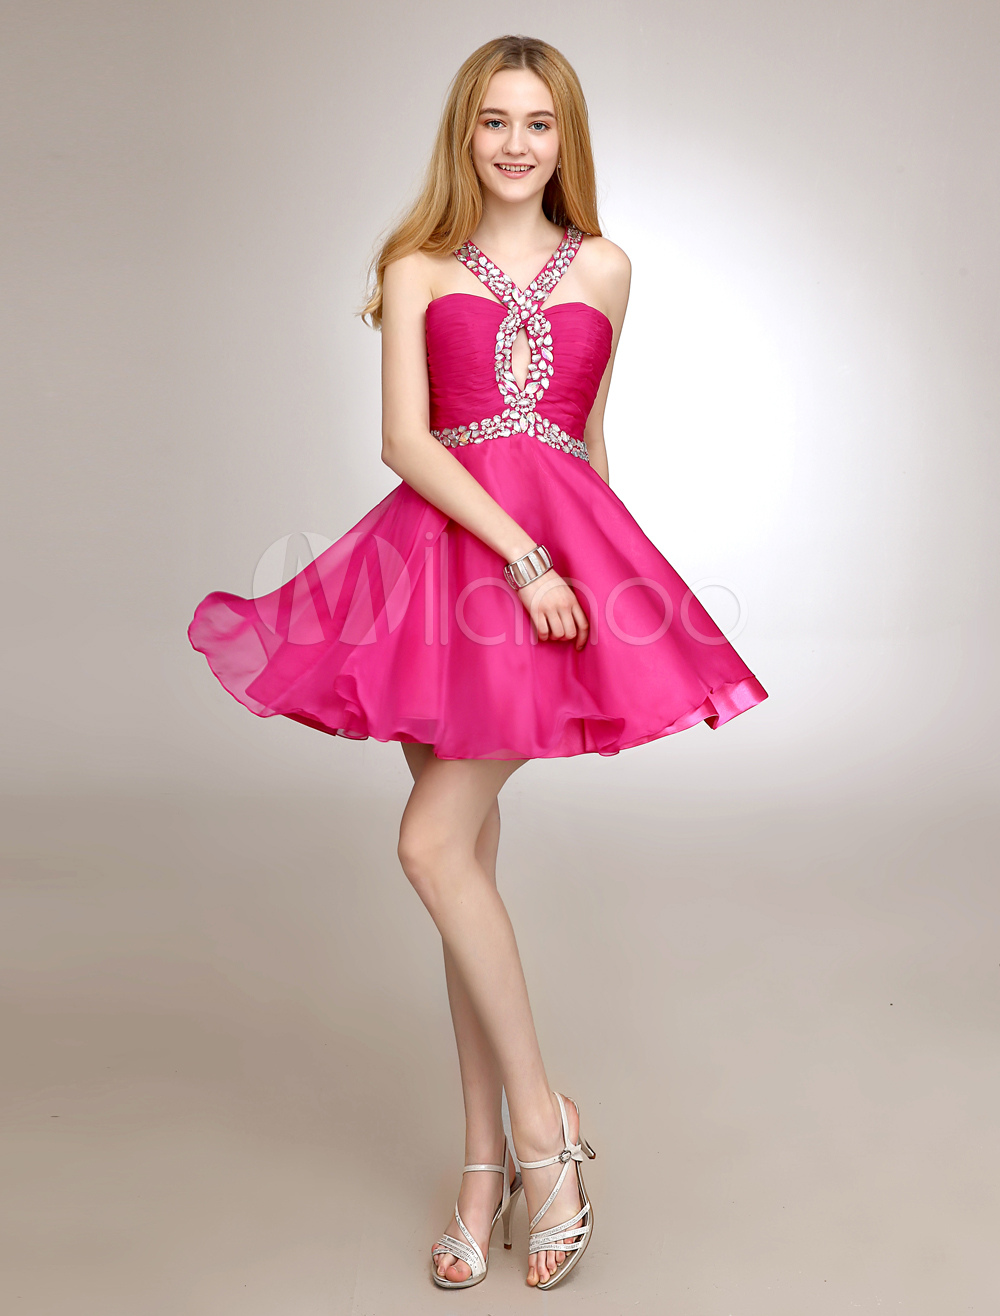 Short Halter Homecoming Dress With Cut Out Chiffon (Wedding) photo